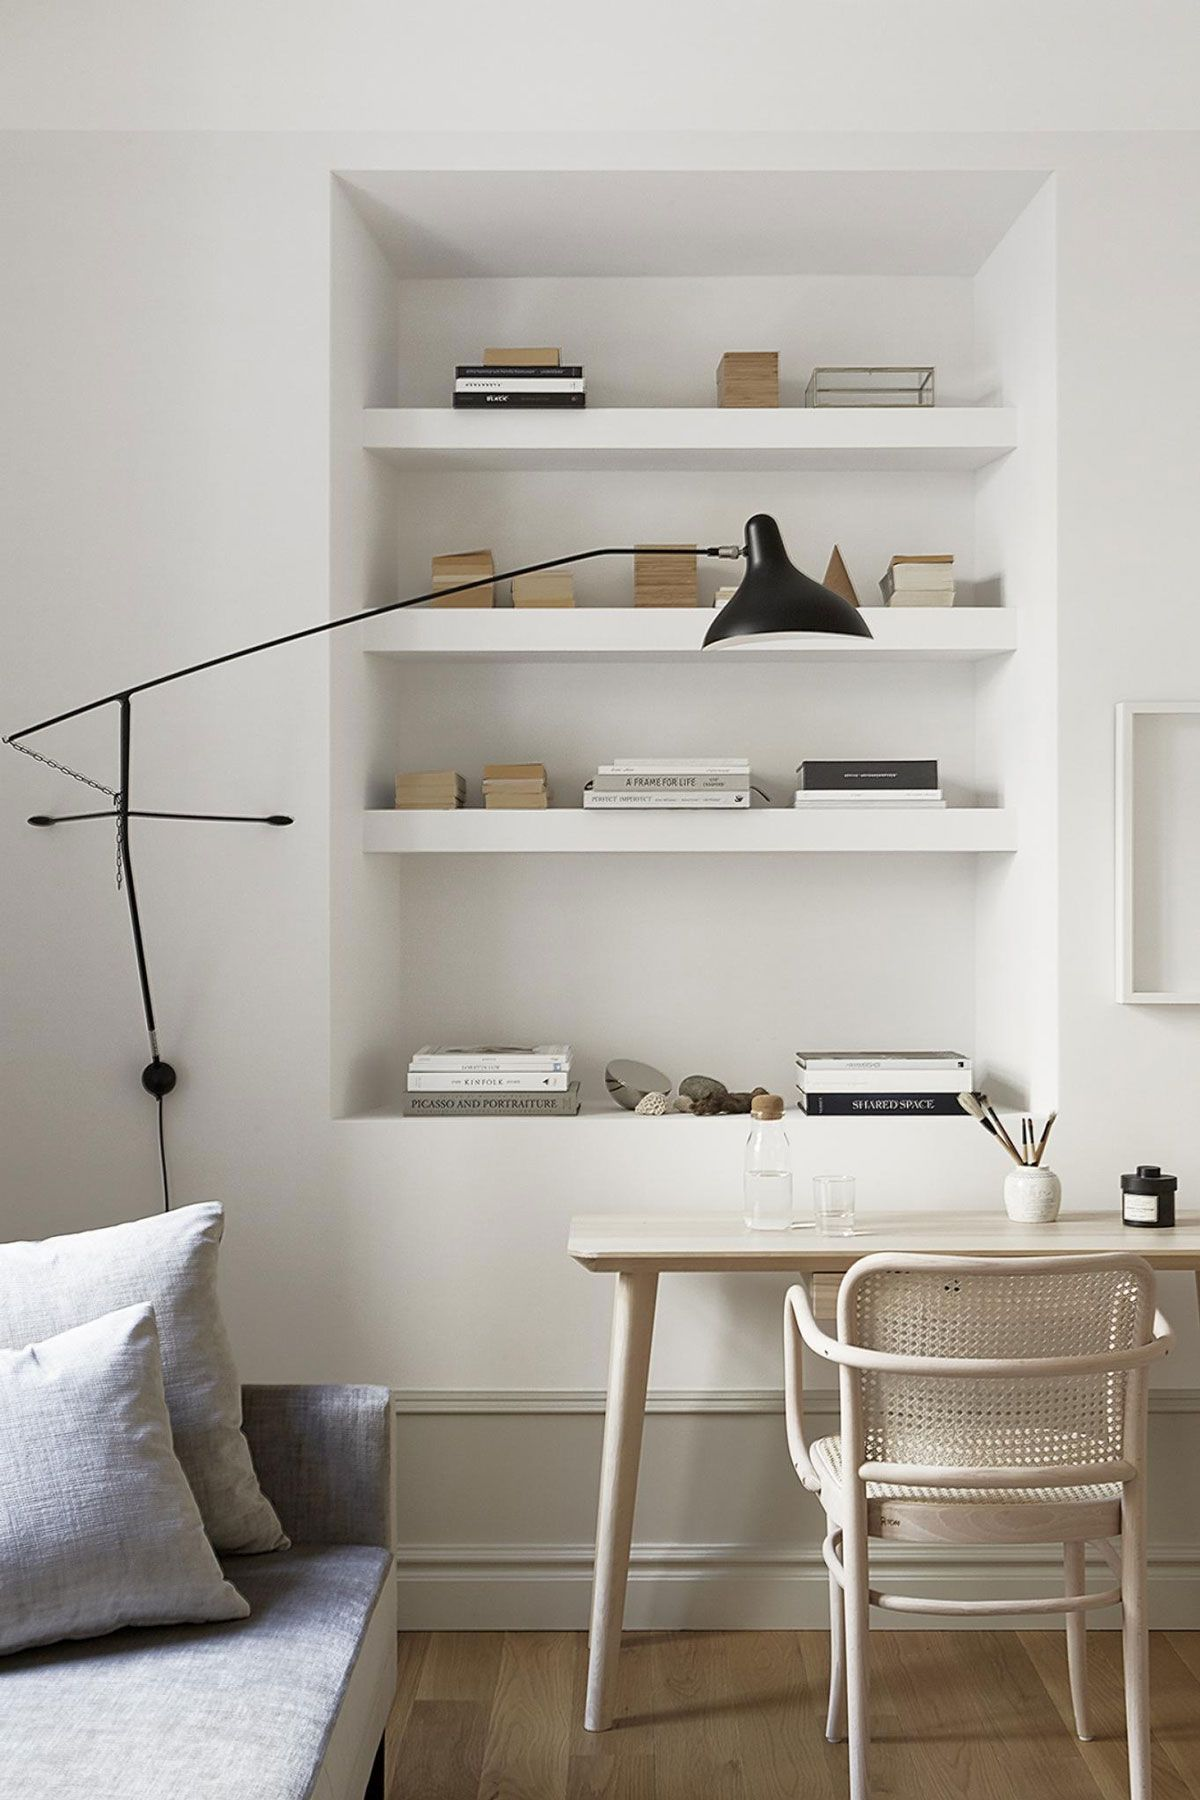 Dekofurn esszimmersets the furnishing is oh so on point iull have everything please